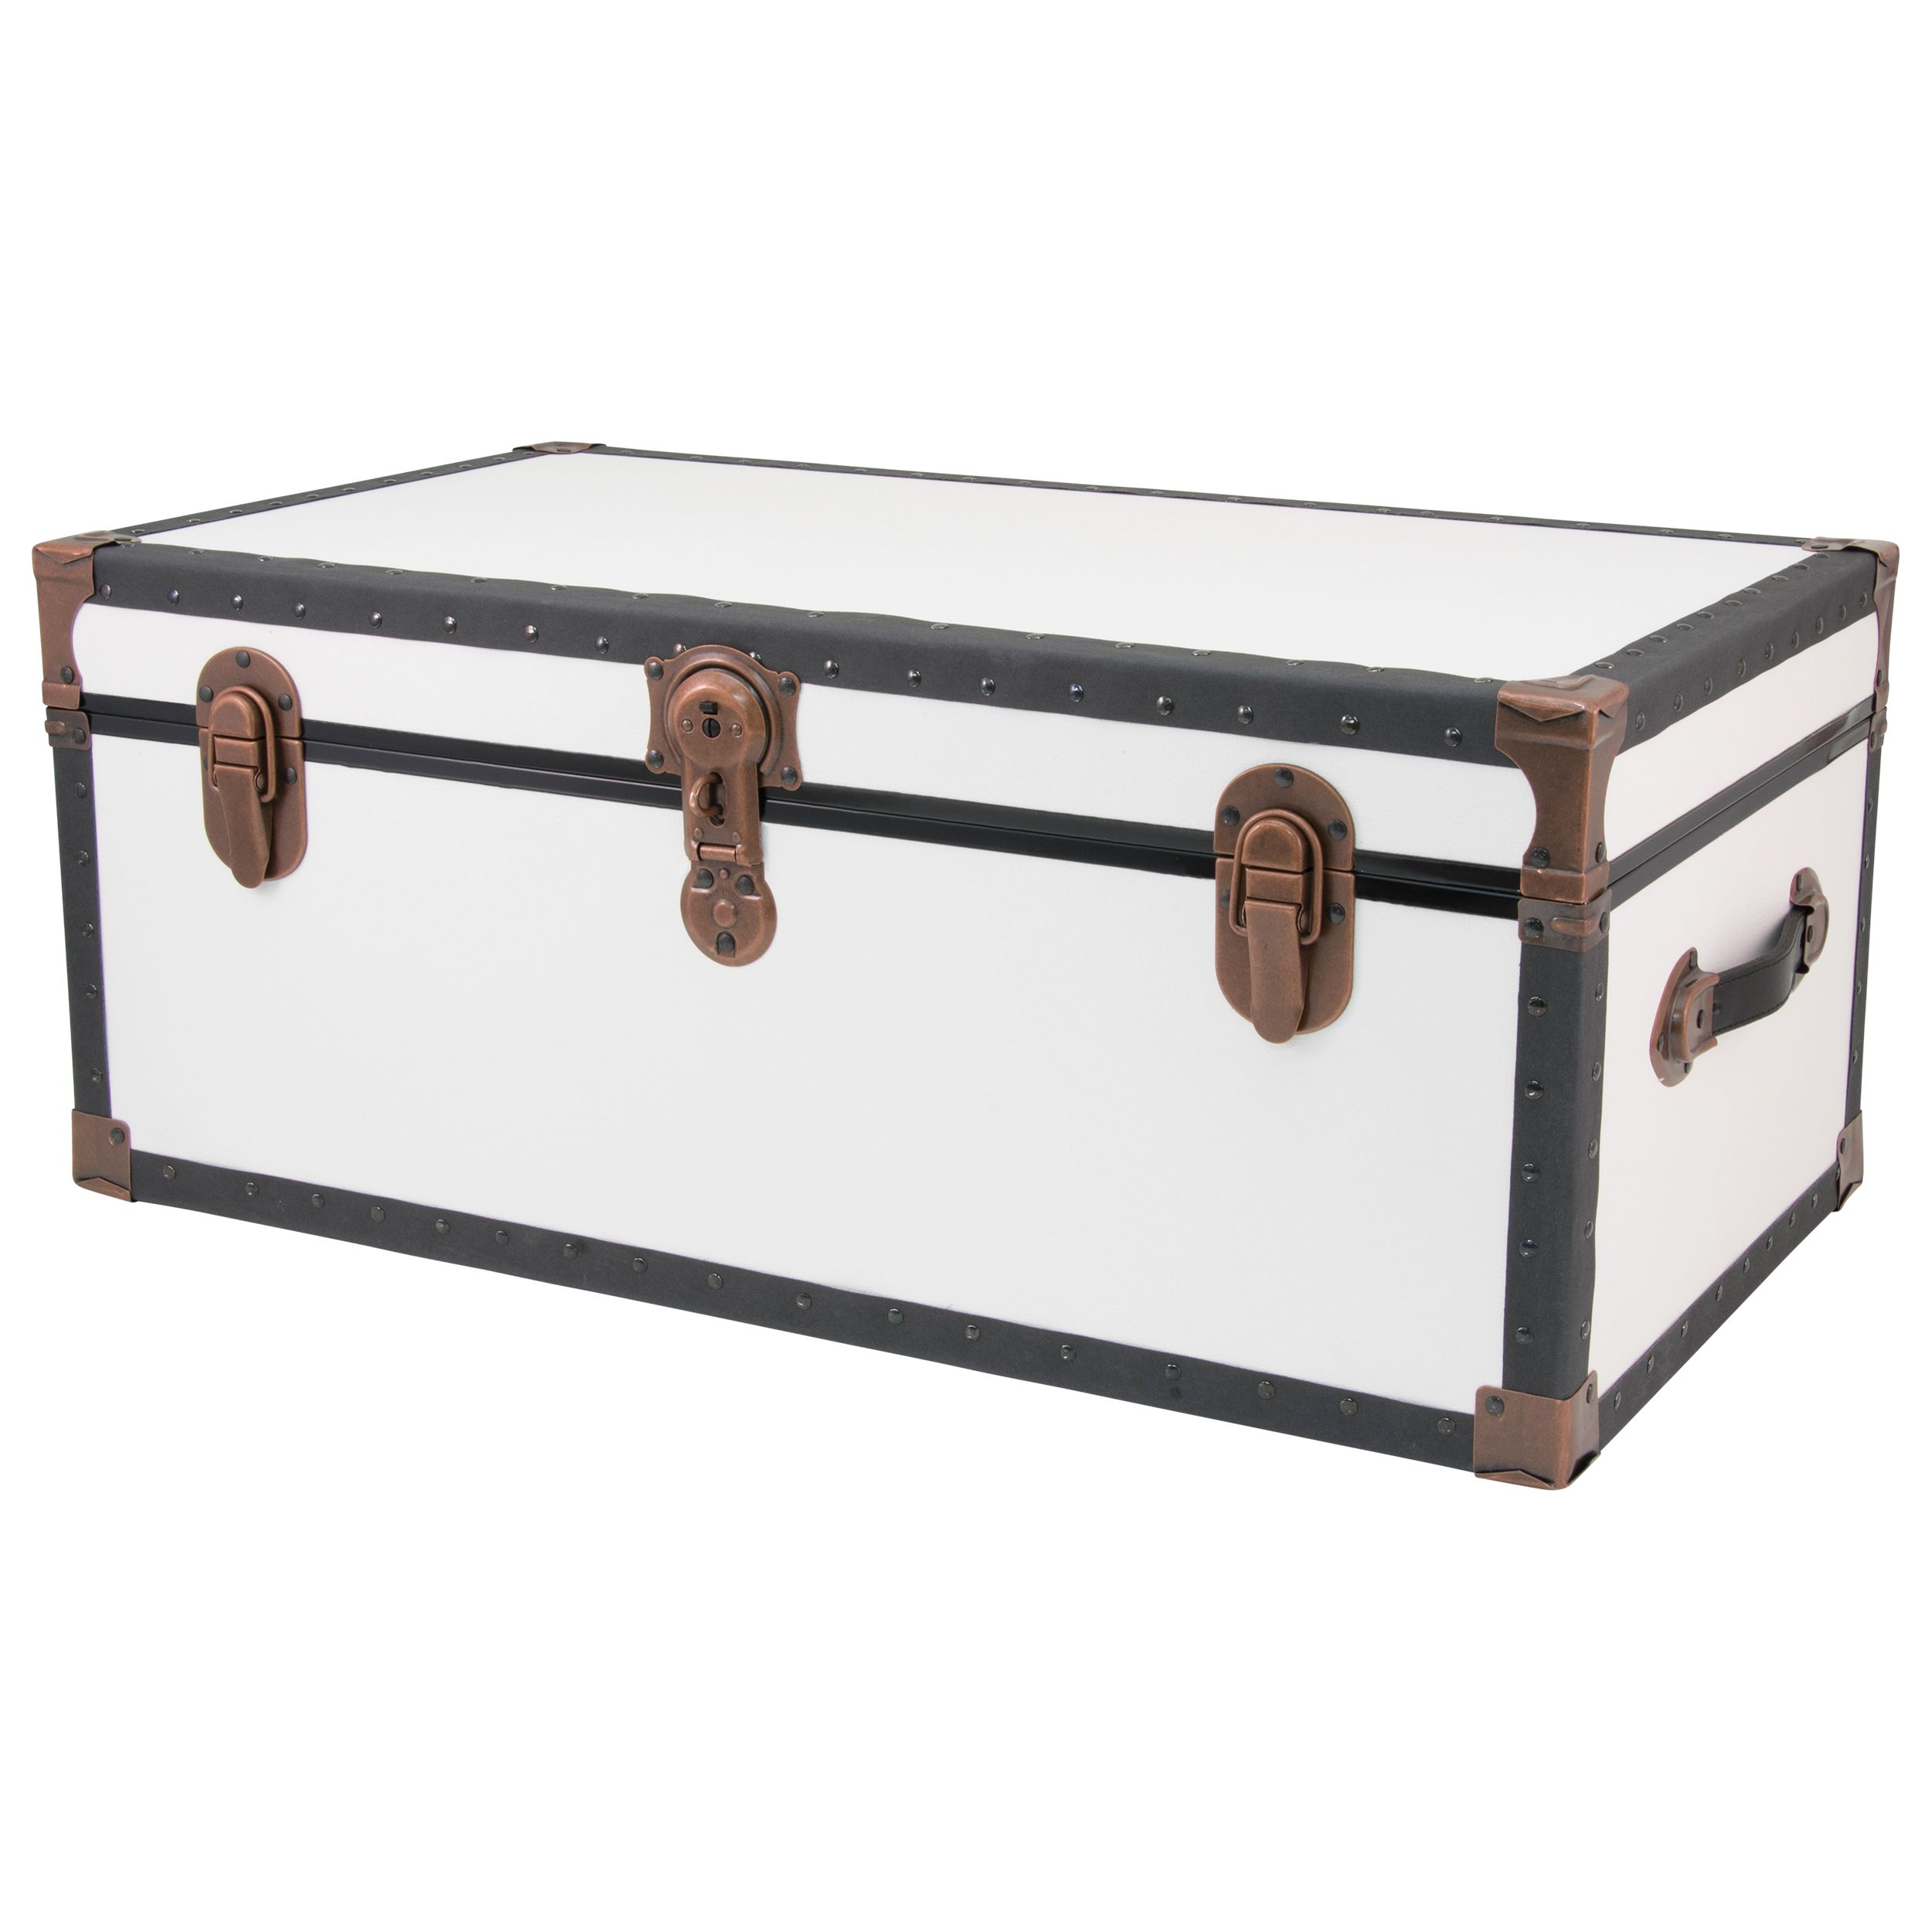 Home Trunks And Chests Seward Trunk Decorative Trunks #trunks #for #living #room